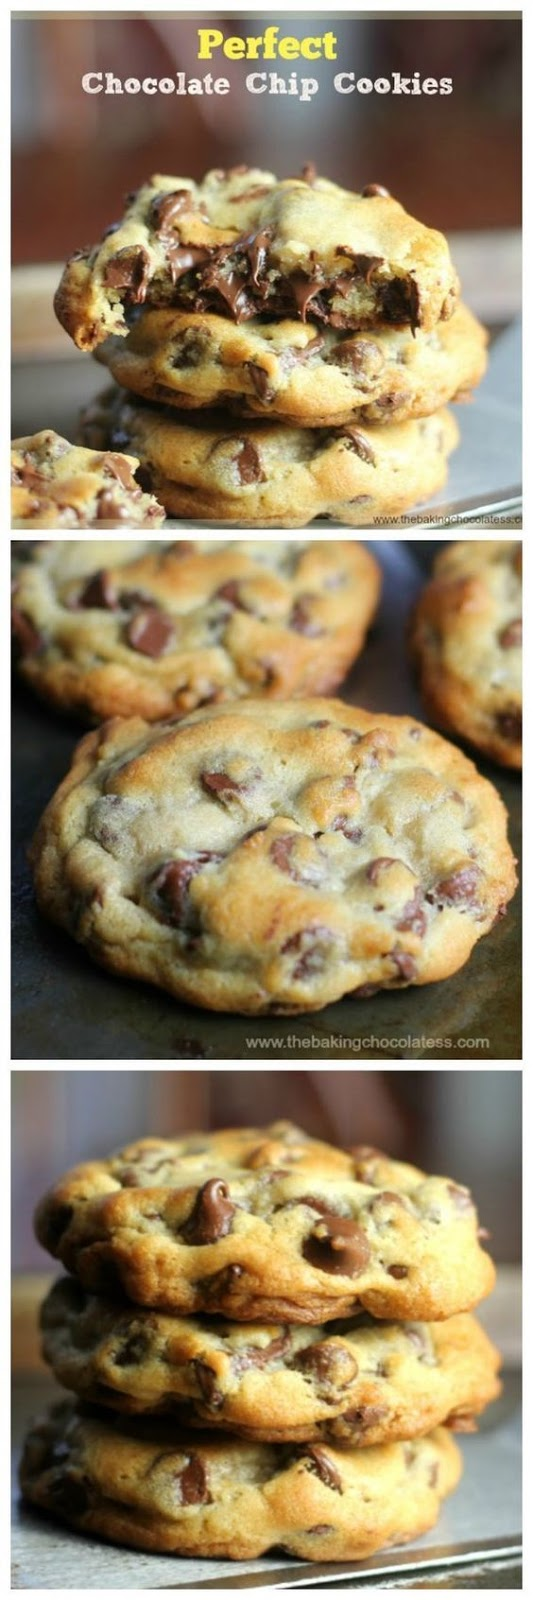 Perfect Chocolate Chip Cookies #perfectcookies #chocolate #chocolatechip #cookies #cookierecipes #easycookierecipes